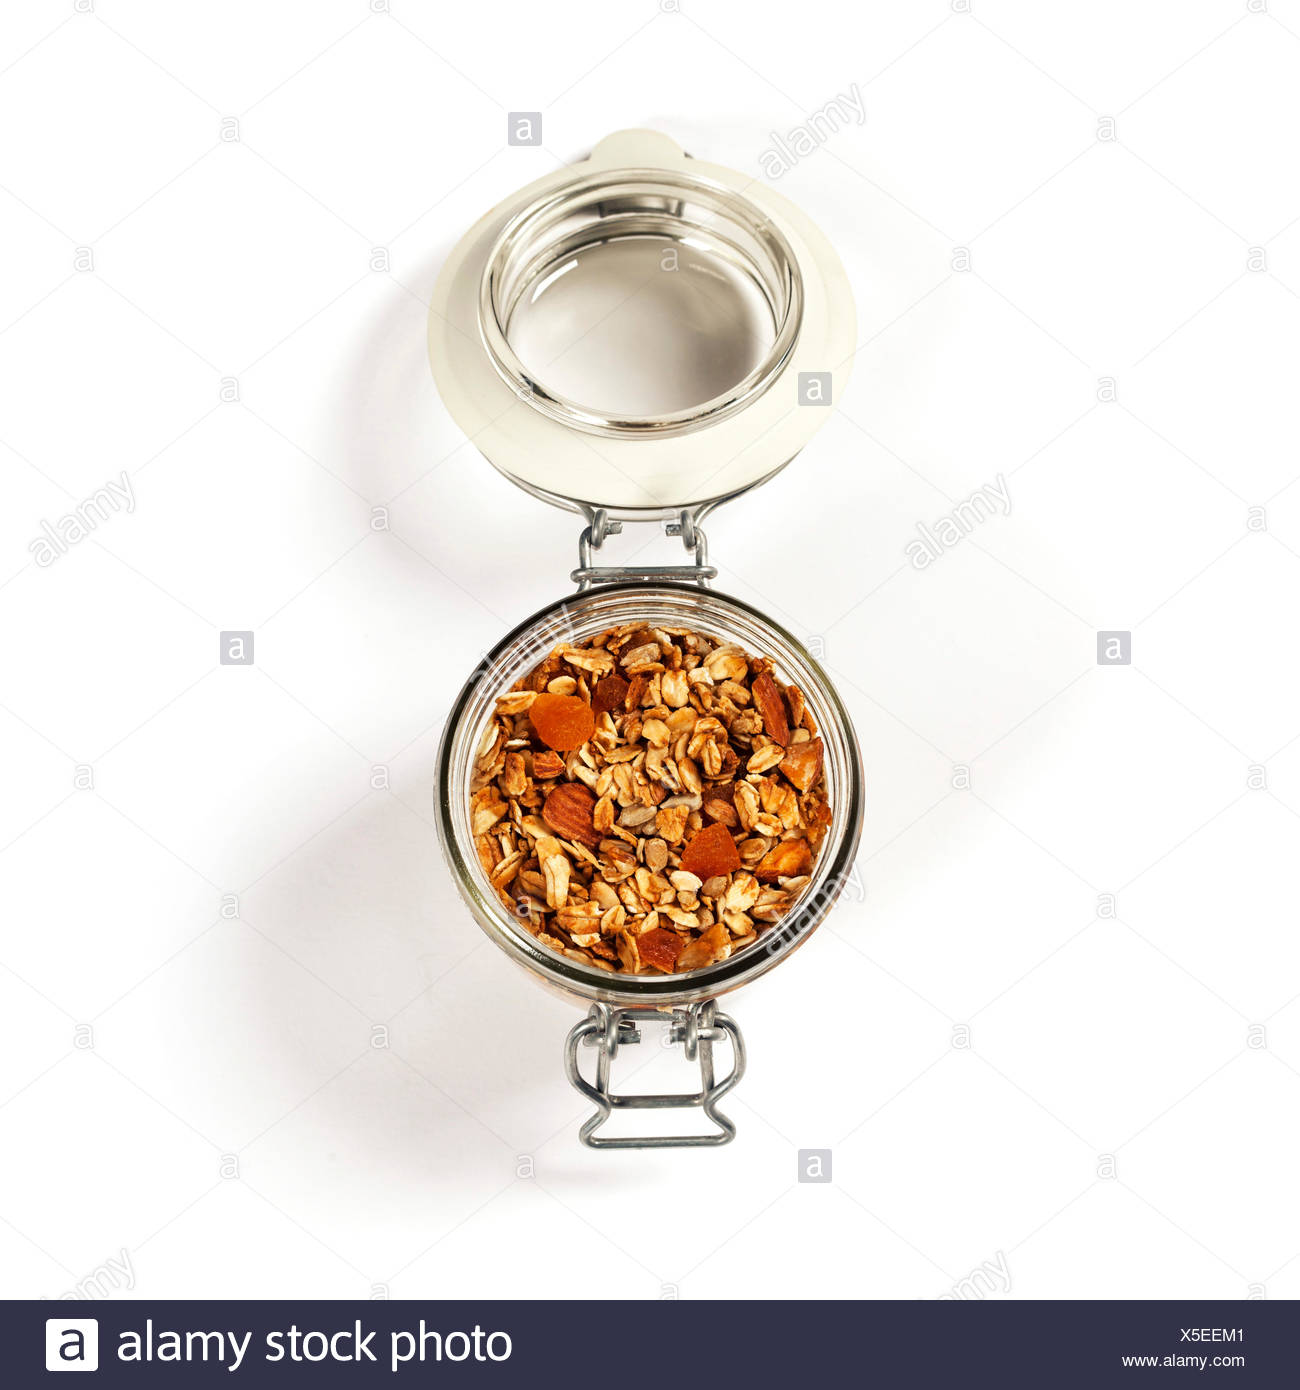 Homemade oatmeal granola with fruits and nuts in a glass jar on white background - Stock Image